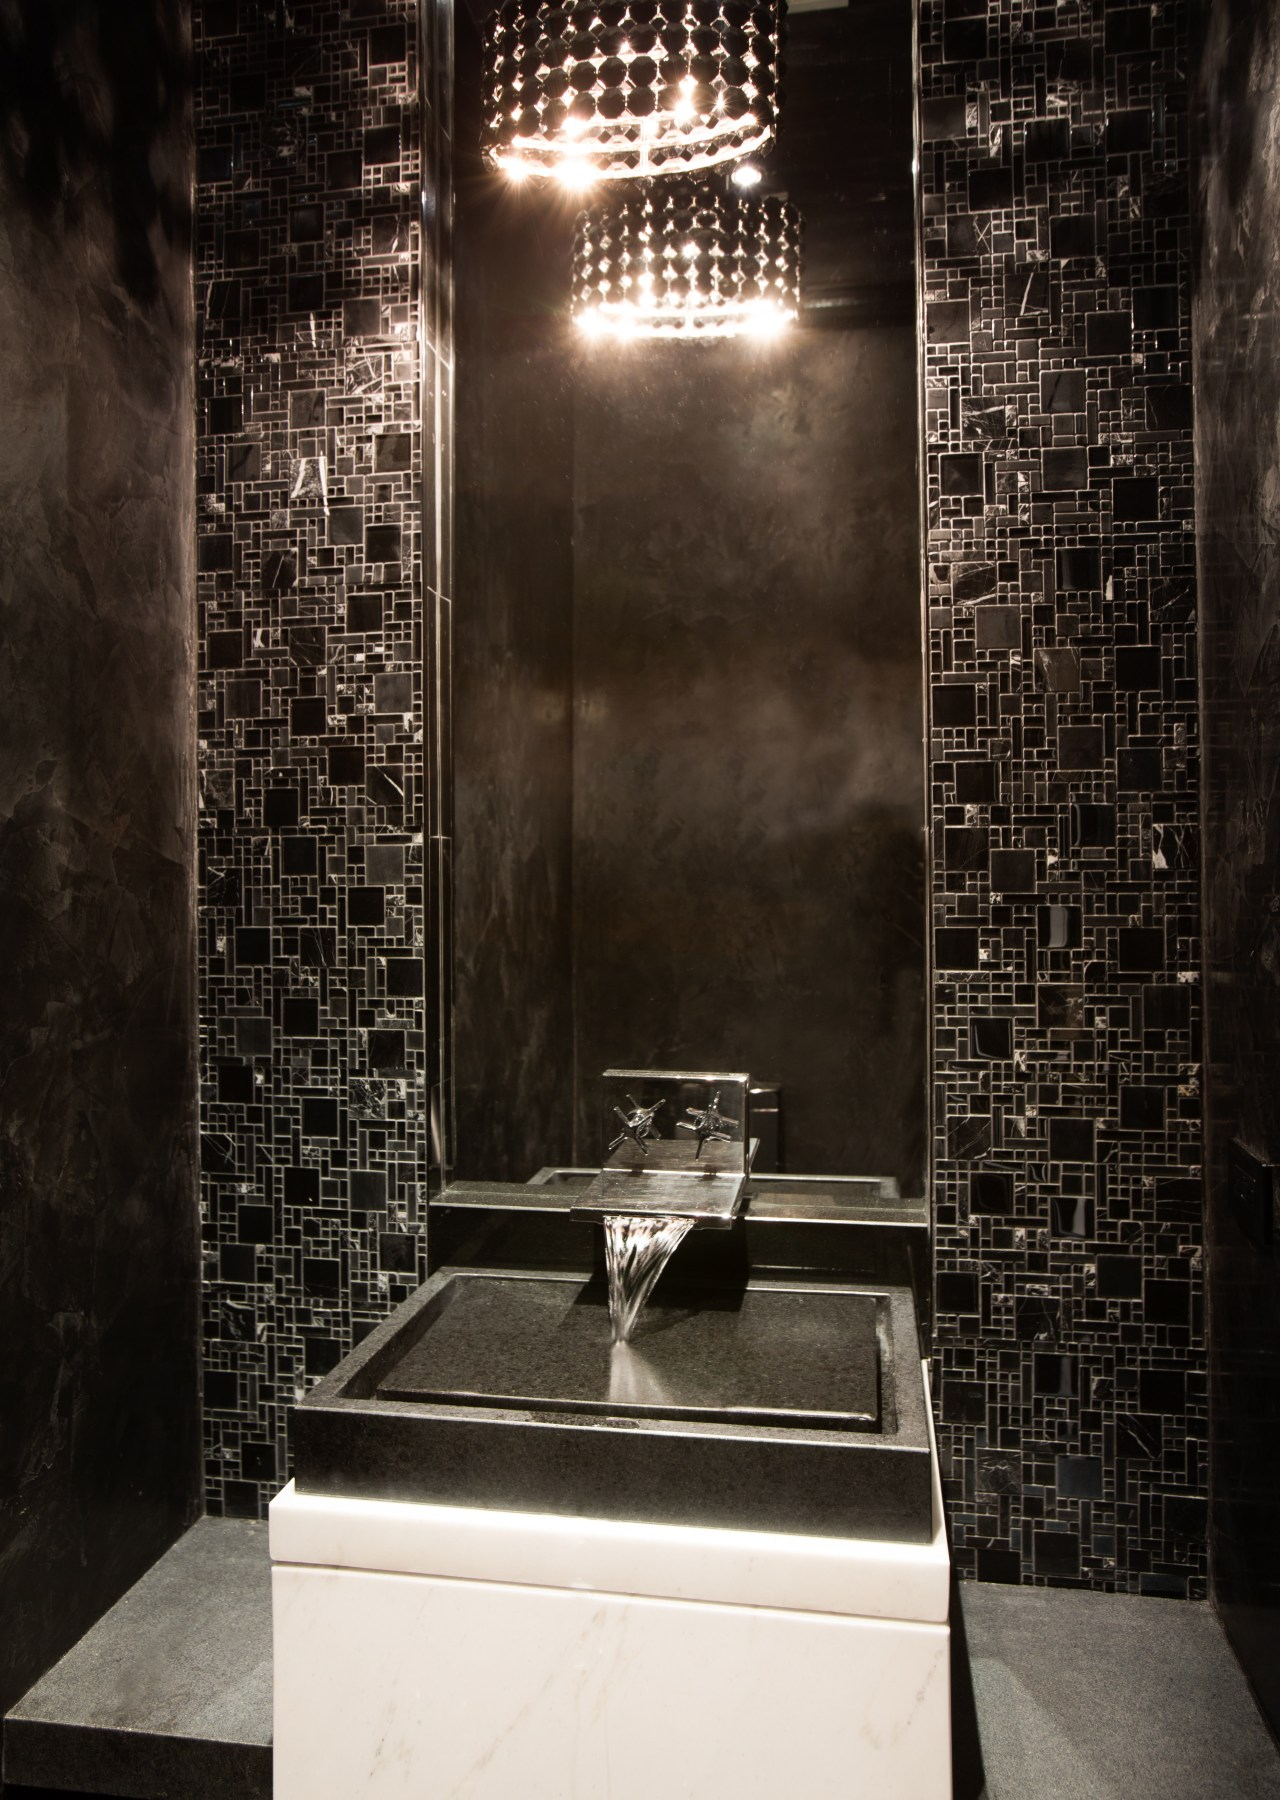 This powder room near the entry to the architecture, bathroom, darkness, flooring, interior design, light, light fixture, lighting, room, wall, black